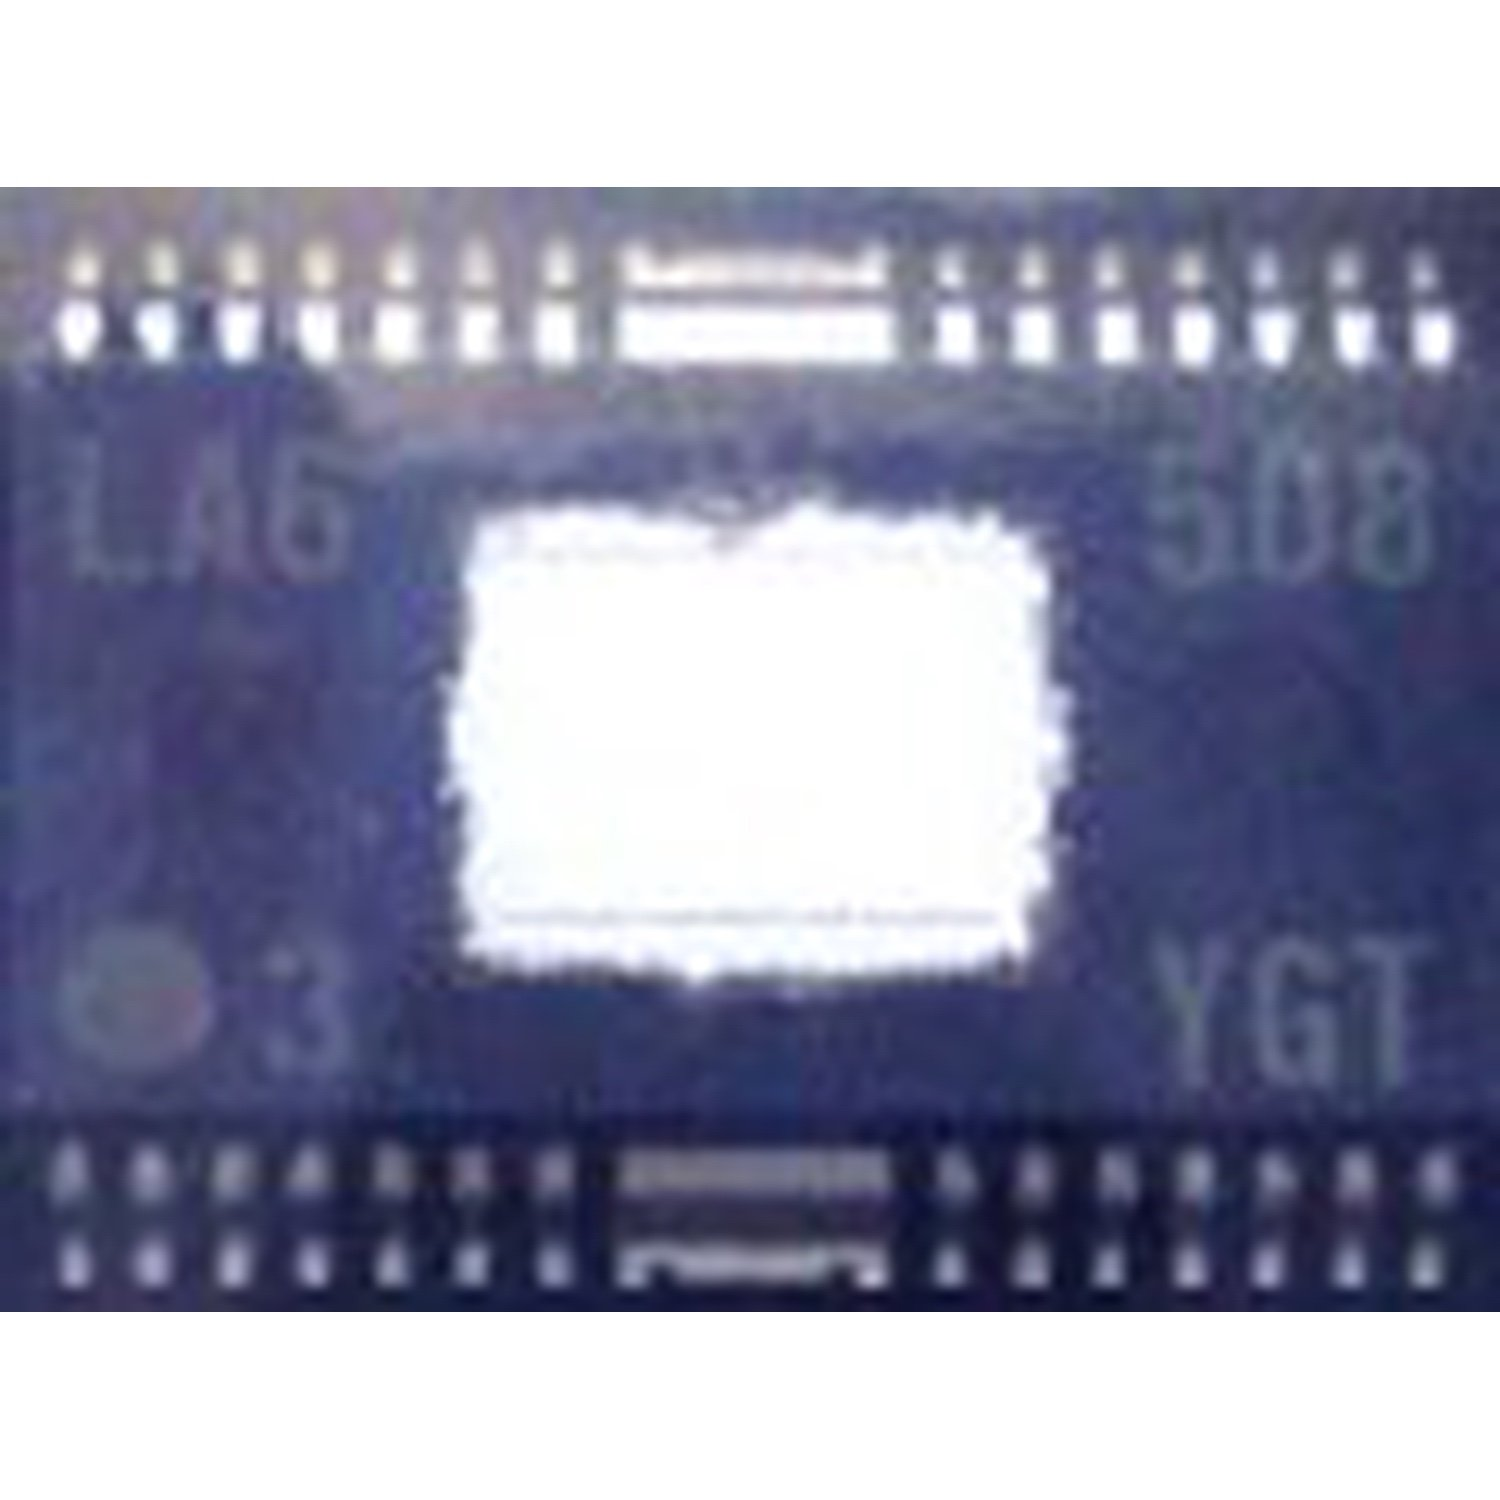 PS2 LASER IC LA6508 * ORIGINAL * 10pcs pt2272 m4s sop20 pt2272 sop smd new and original ic free shipping